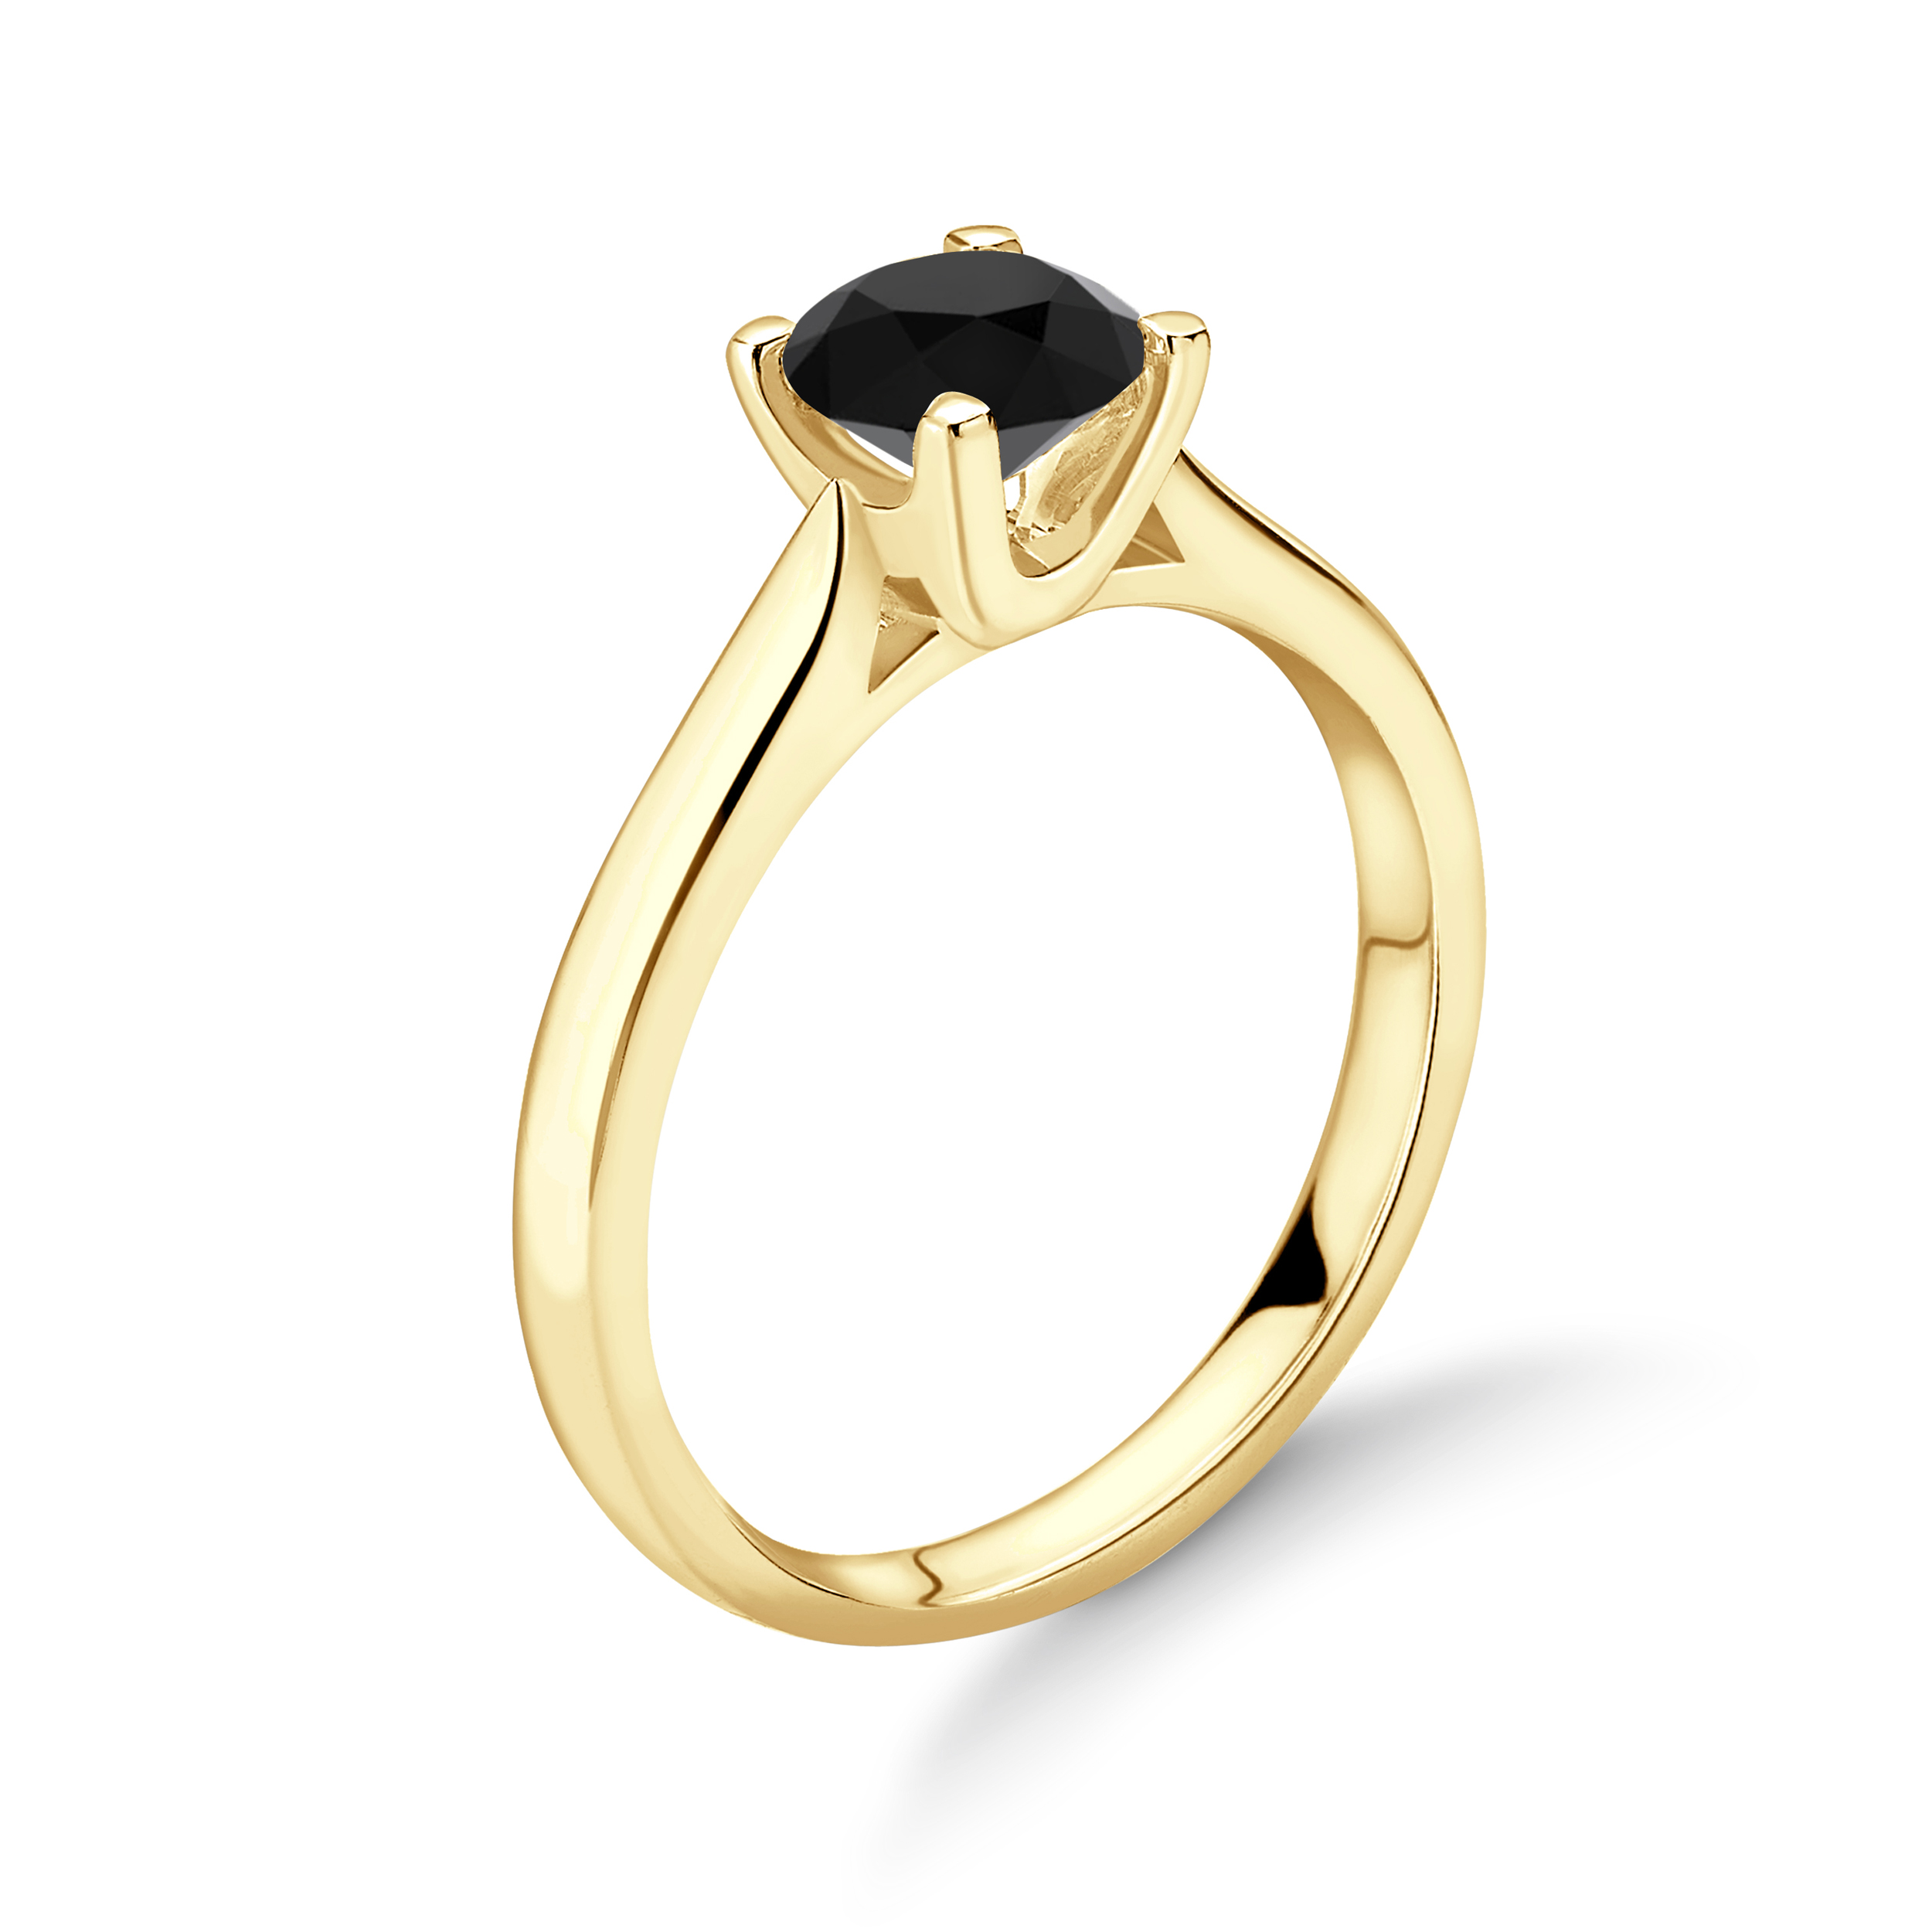 Simple Elegant Engagement Rings 4 Prong Solitaire Black Diamond Engagement Ring UK